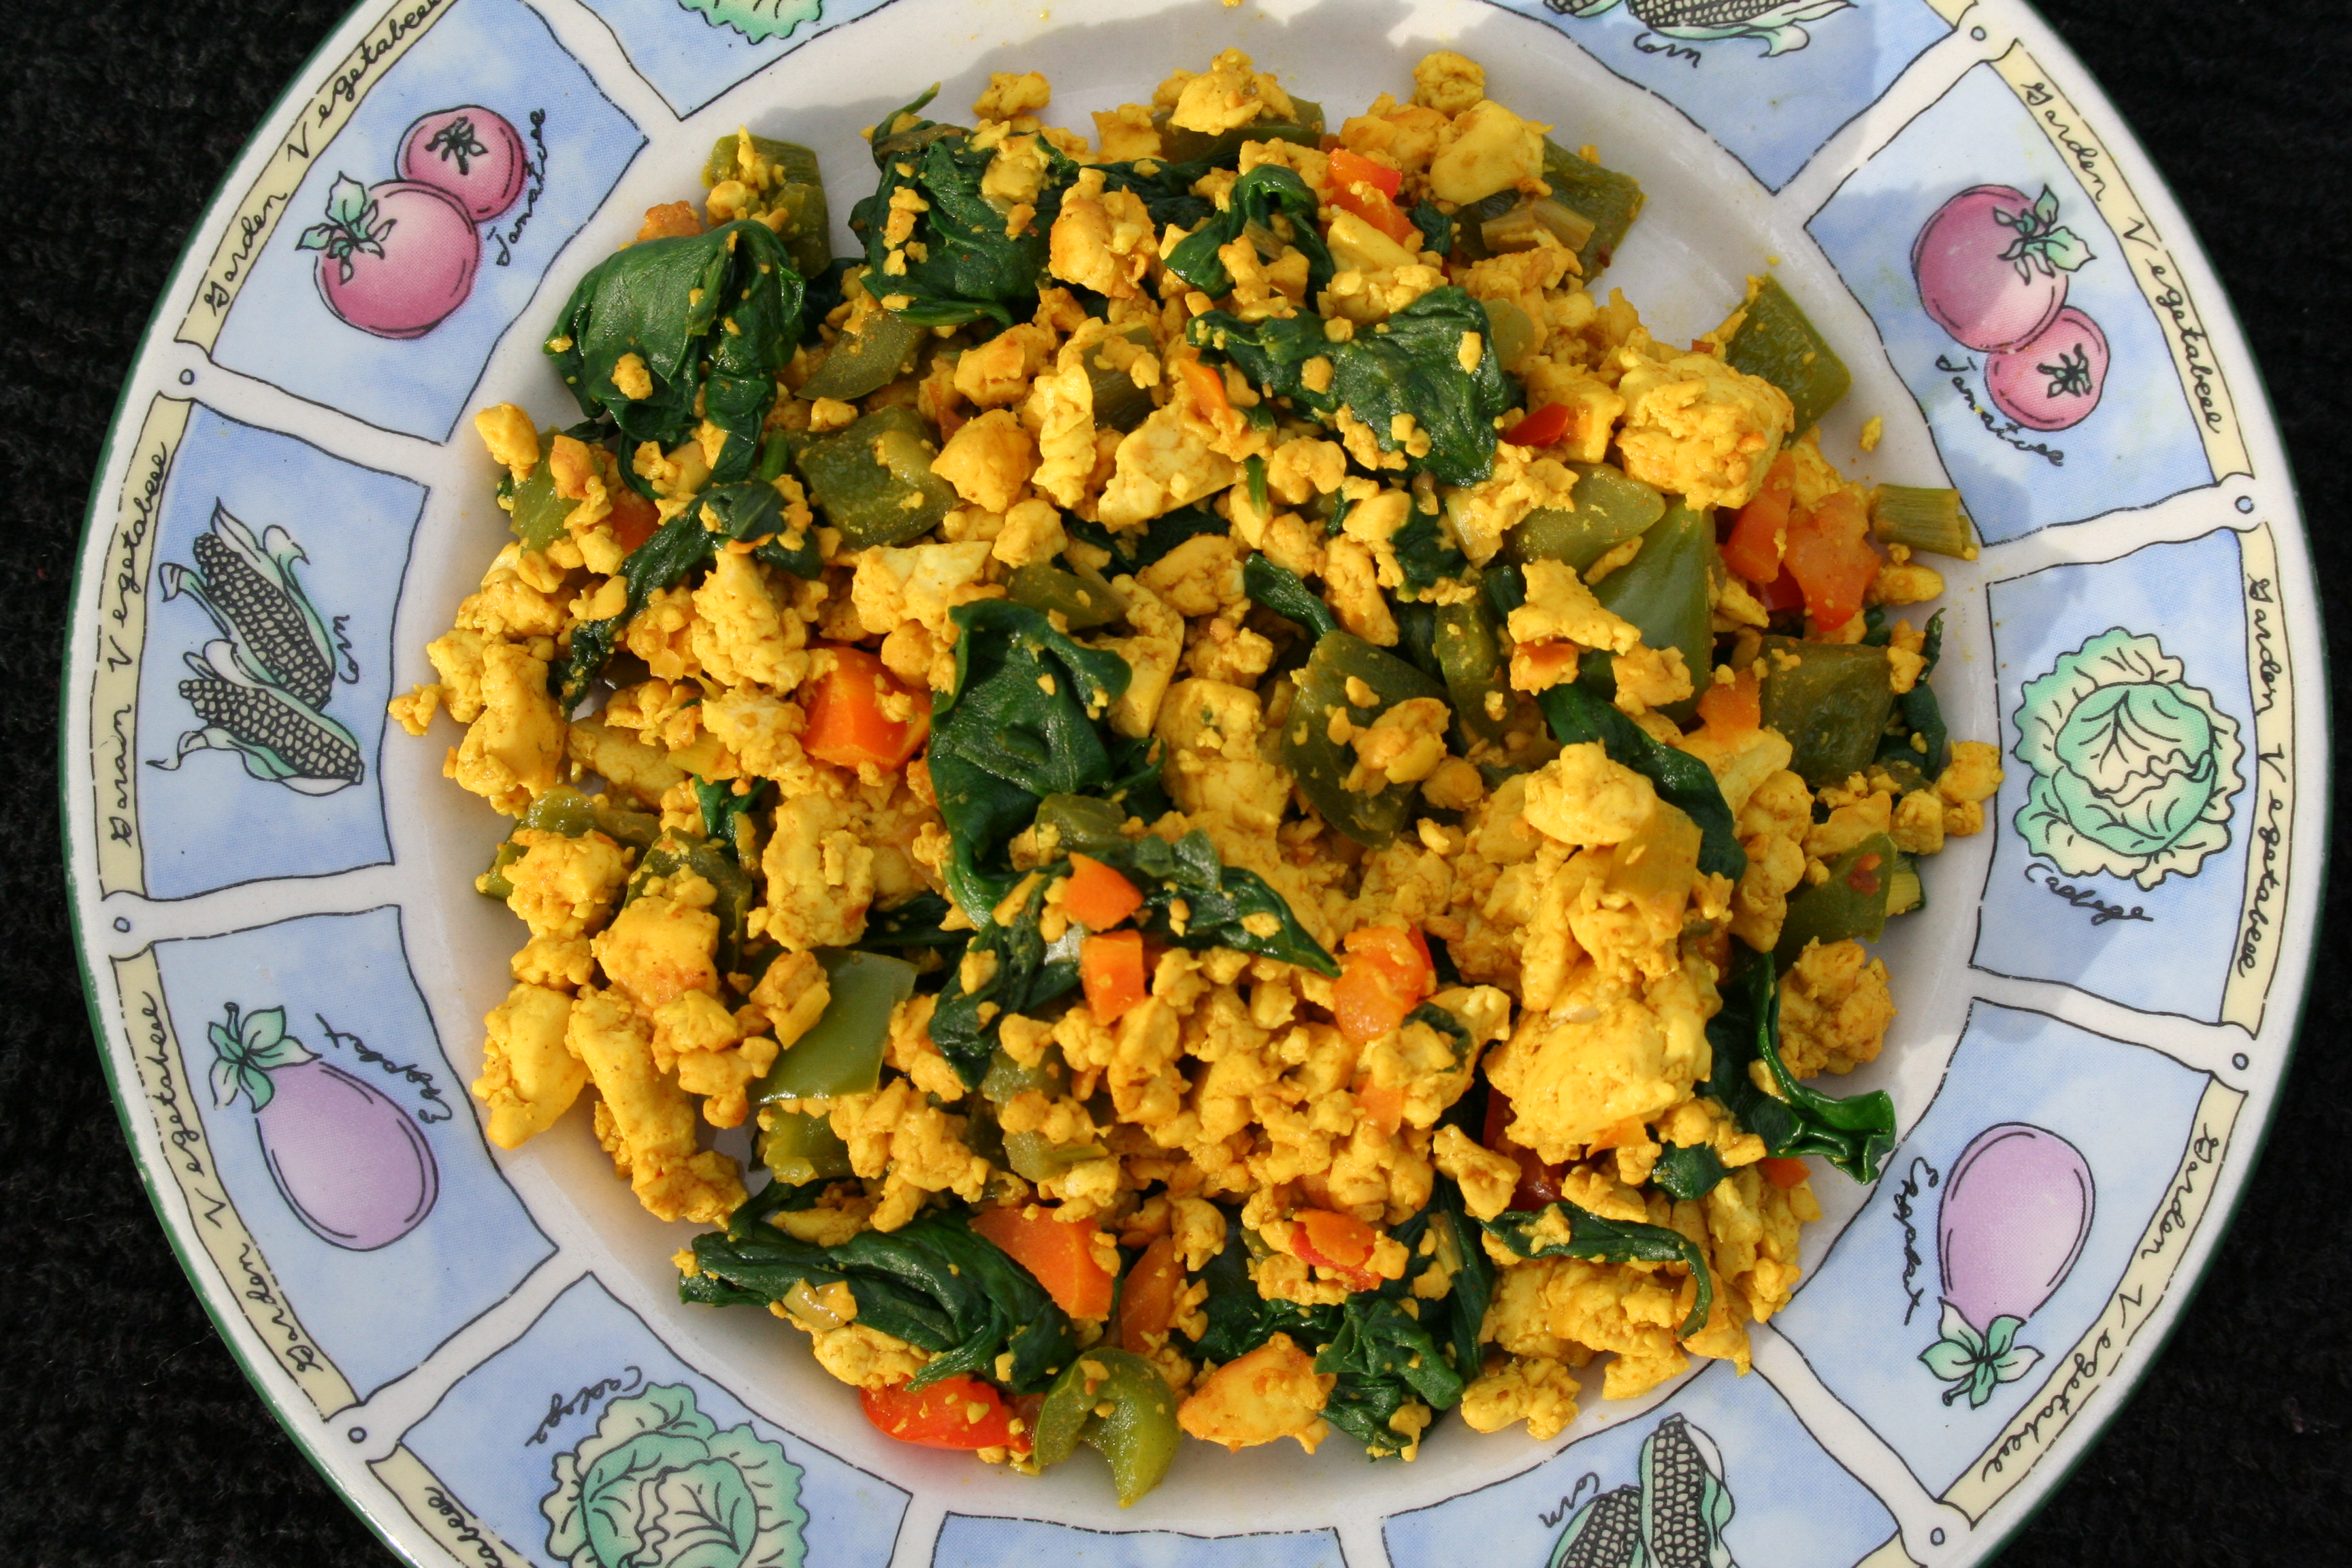 Tofu Scramble birds eye view.